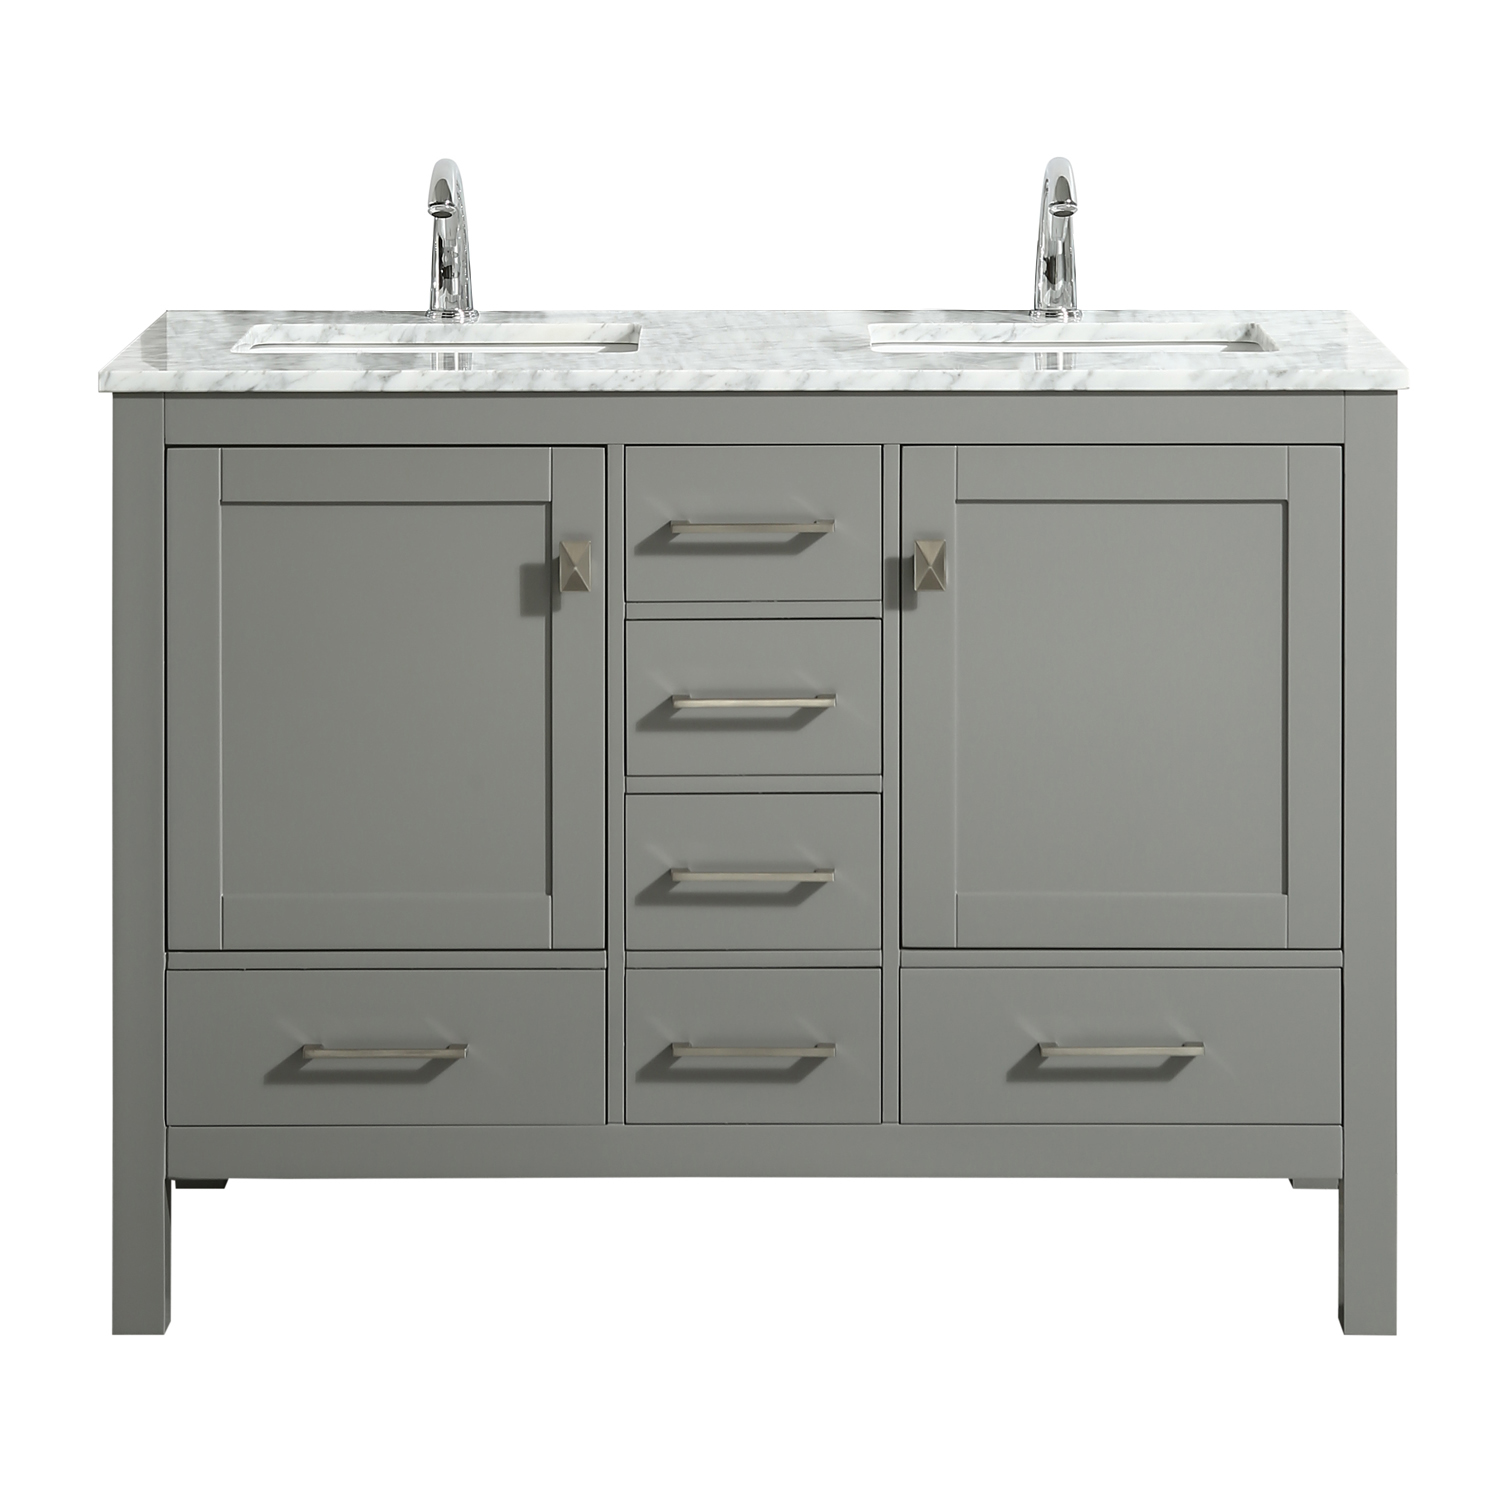 Eviva London 48 X 18 Transitional Gray Bathroom Vanity With White Carrara Marble And Double Porcelain Sinks